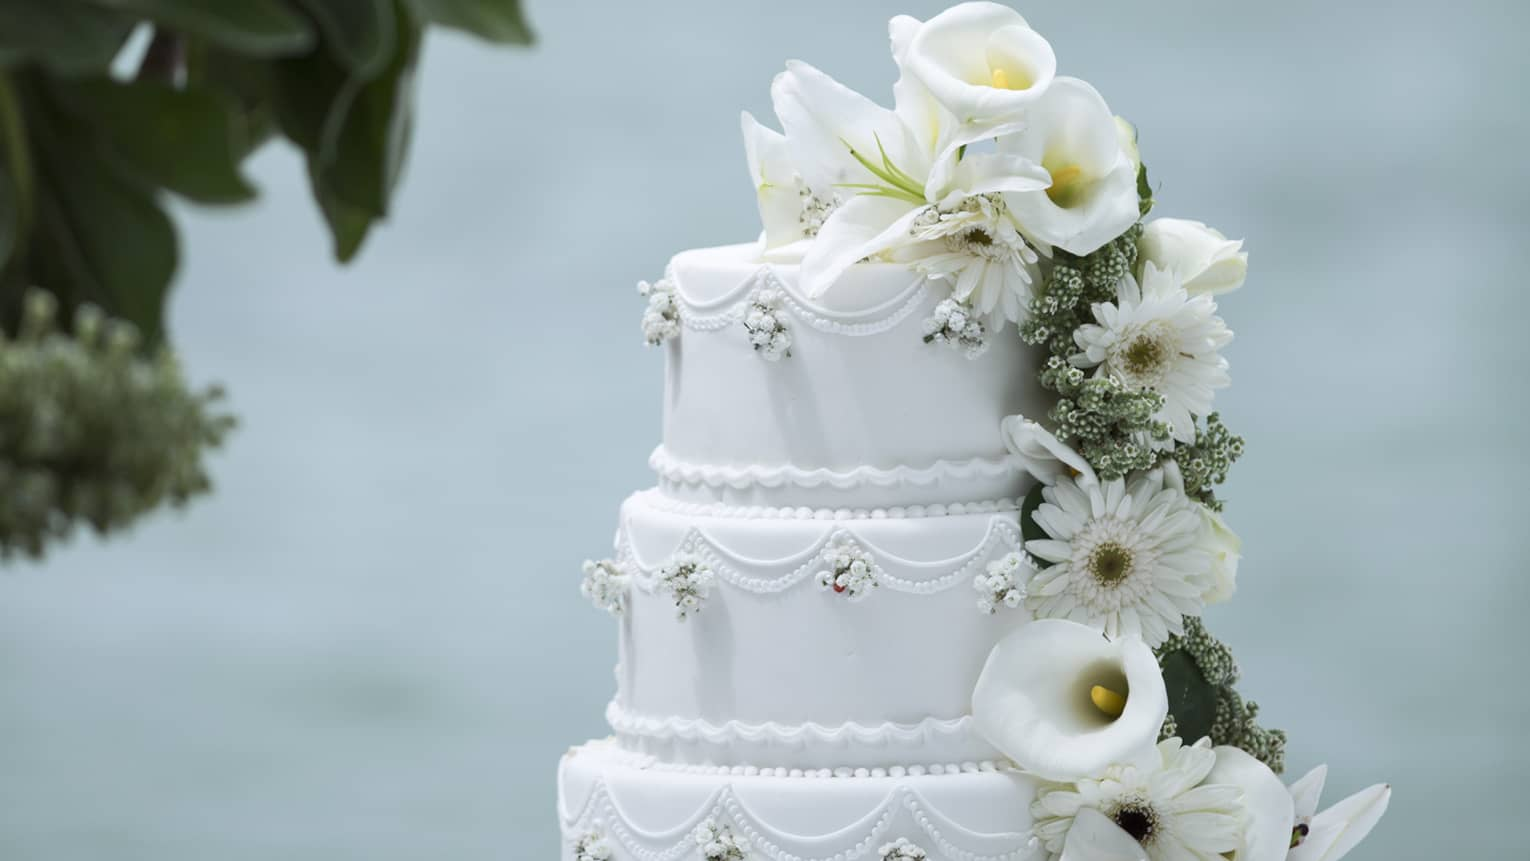 Three tiered wedding cake decorated with white flowers, daisies